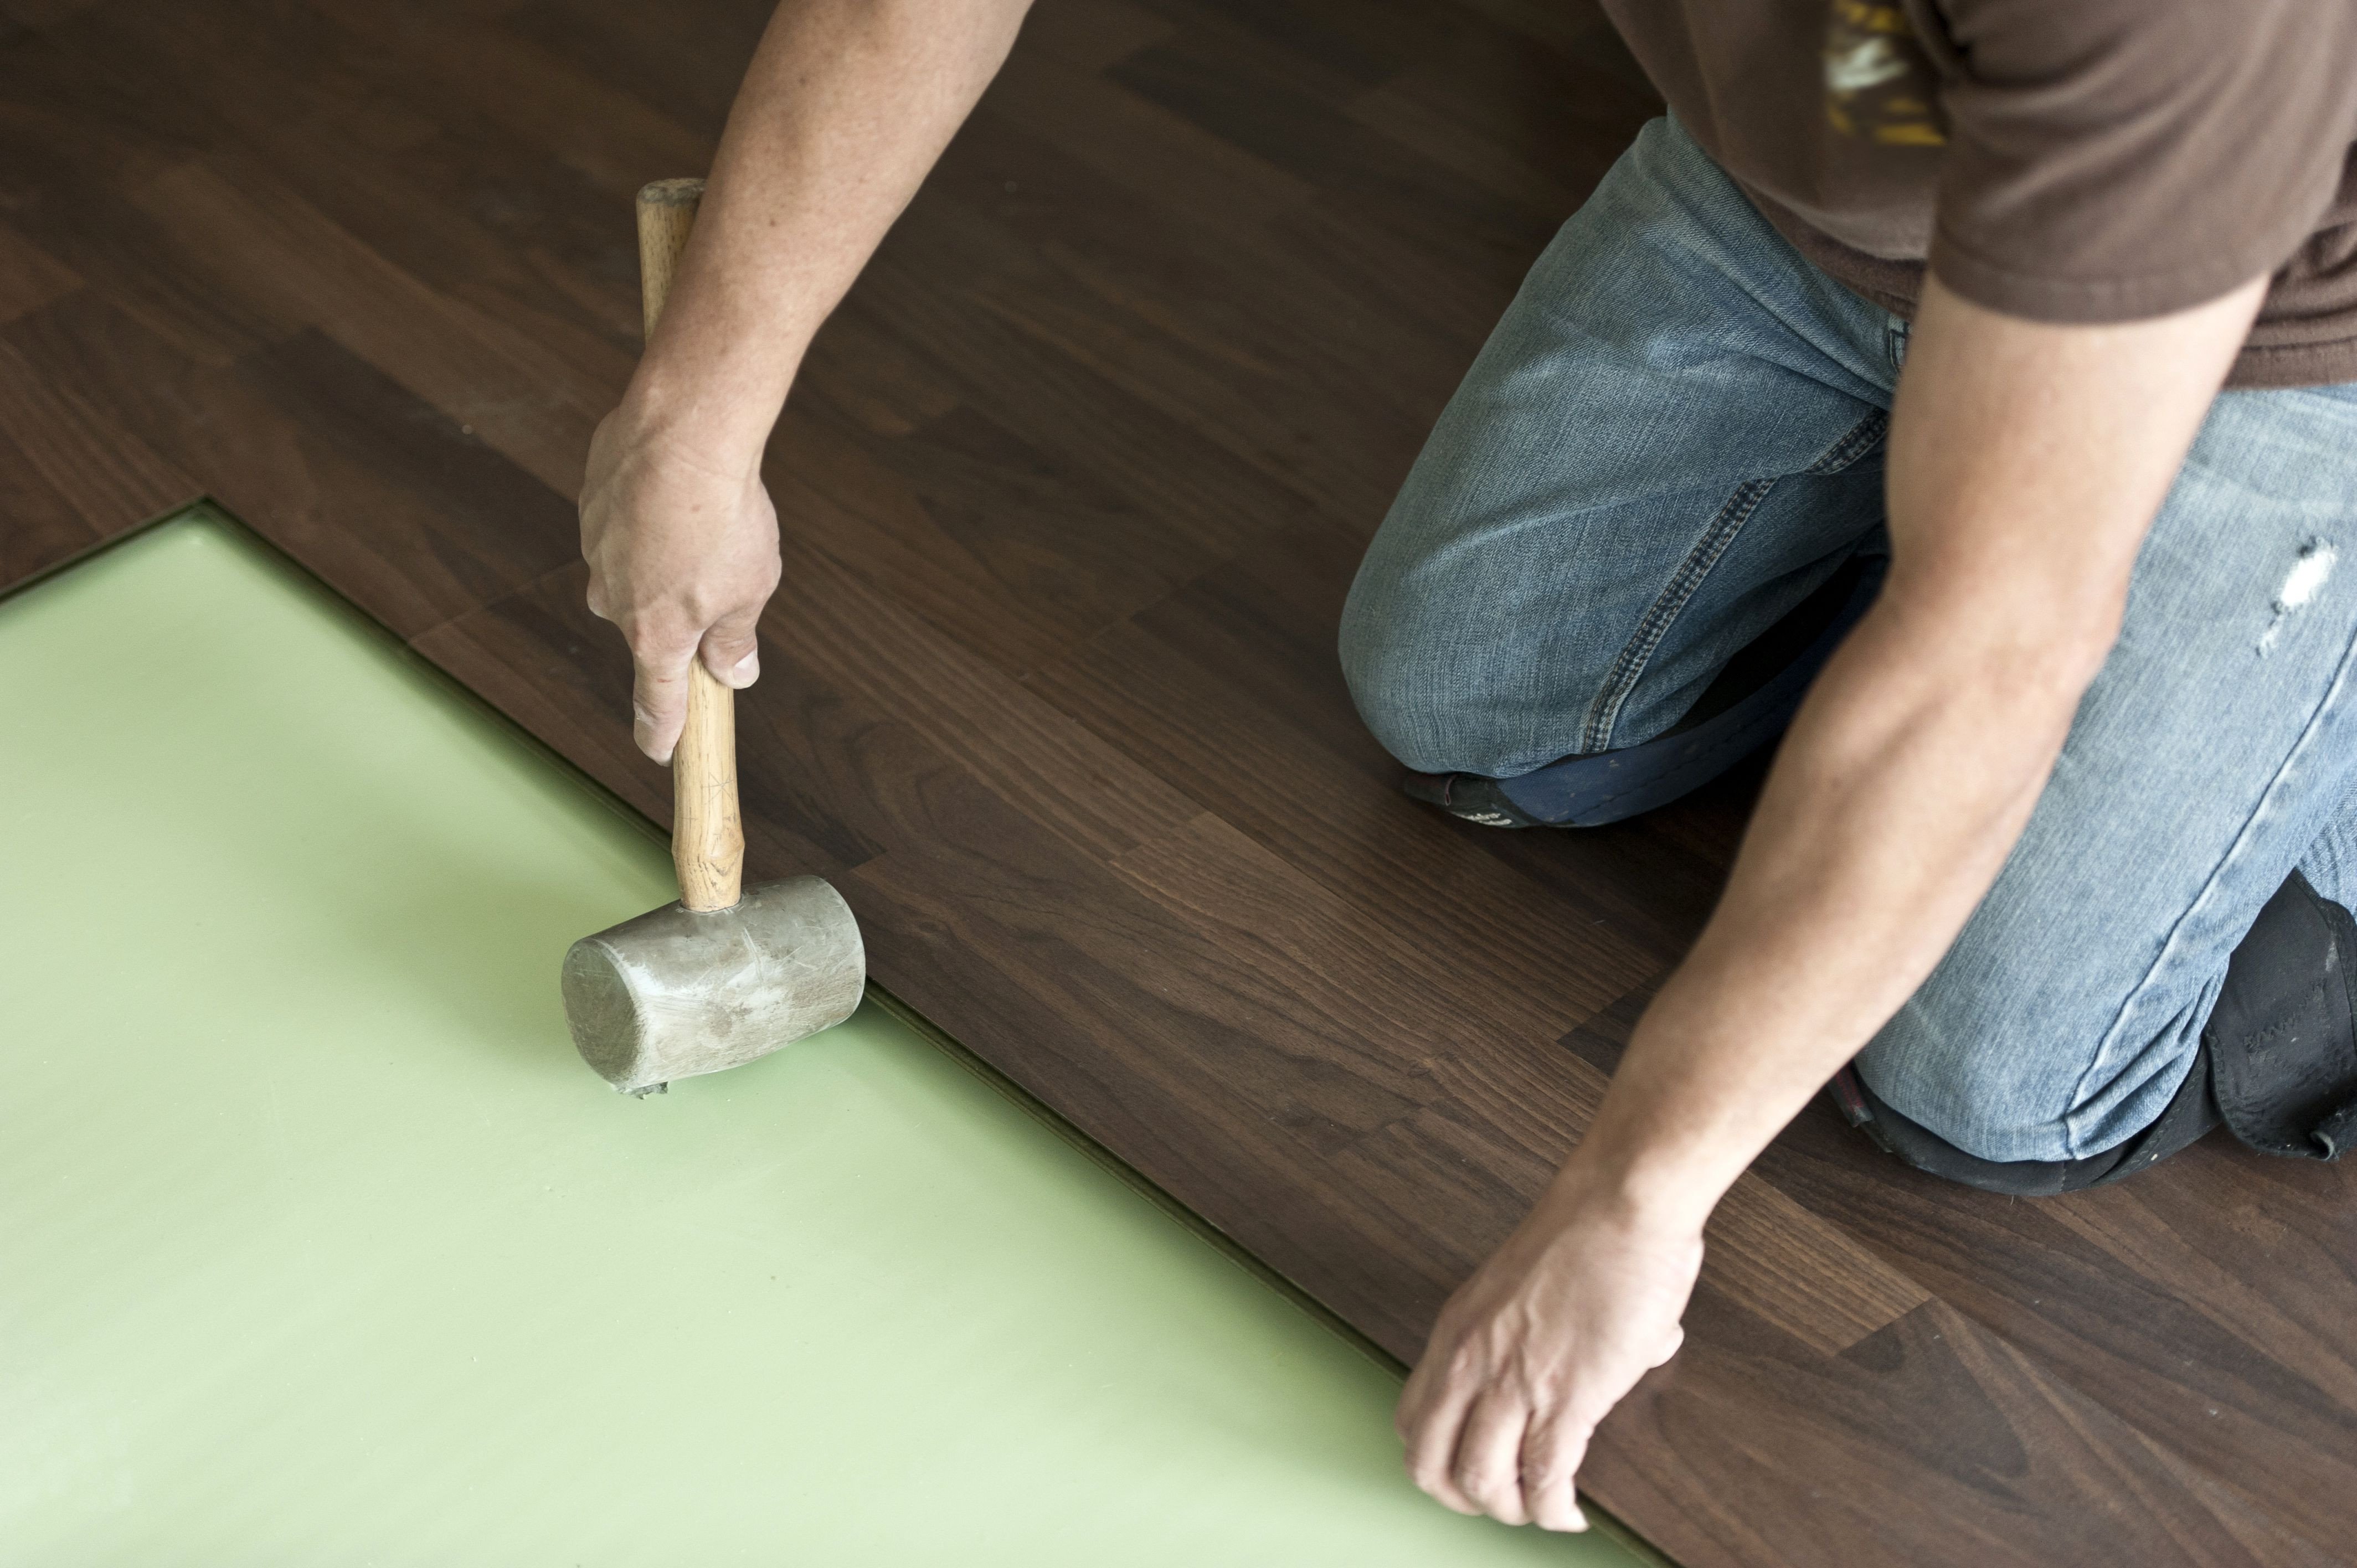 quality hardwood floor installation of can a foam pad be use under solid hardwood flooring intended for installing hardwood floor 155149312 57e967d45f9b586c35ade84a